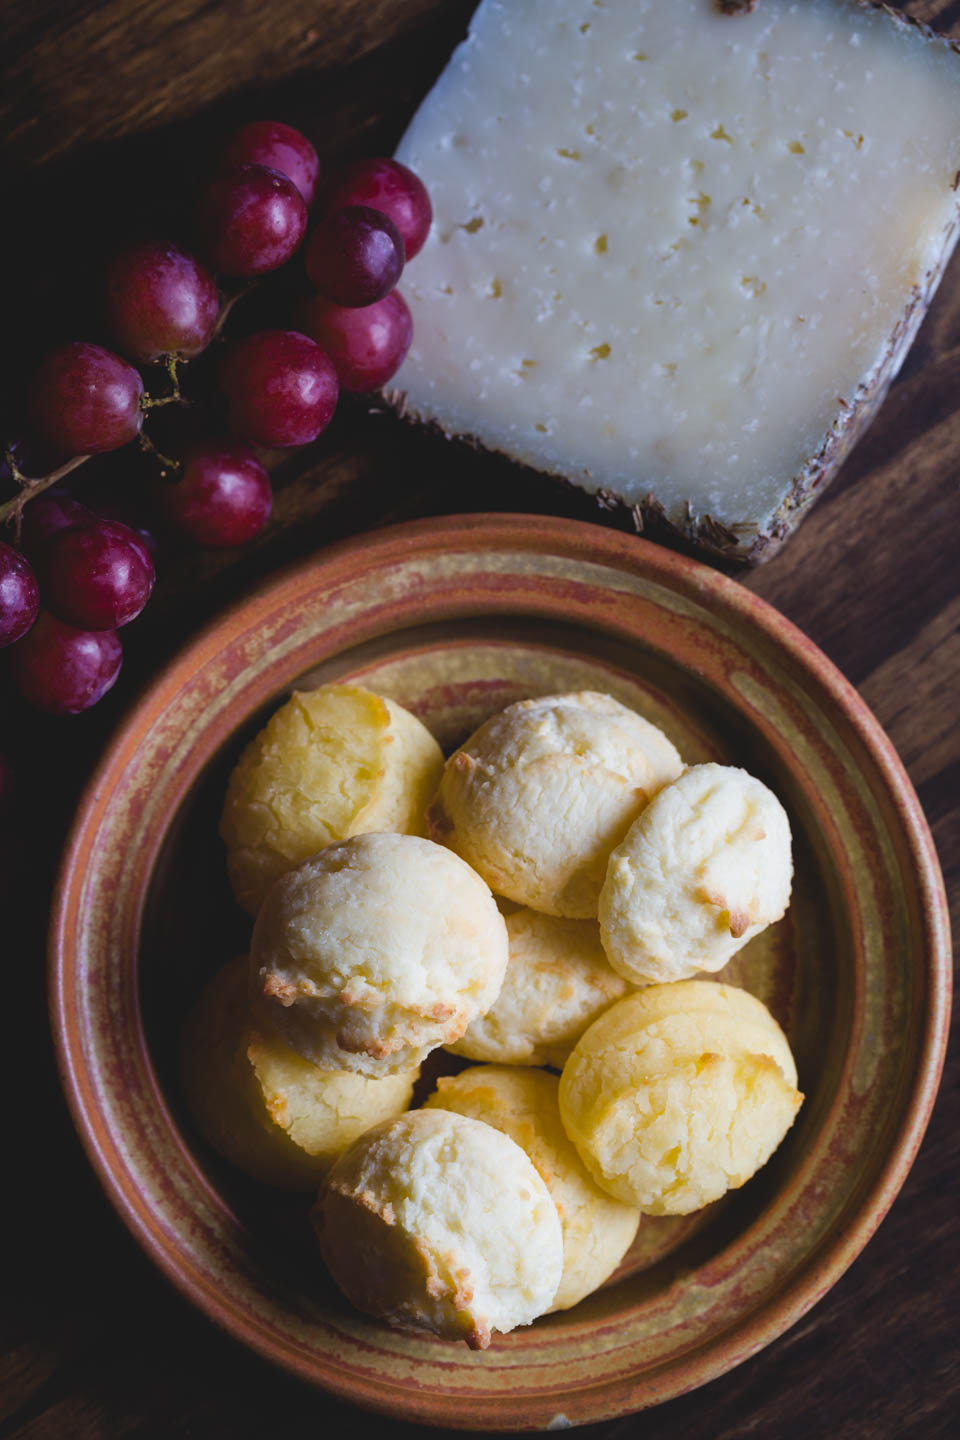 Spanish machego with rosemary. Also pictured with pao de queijo